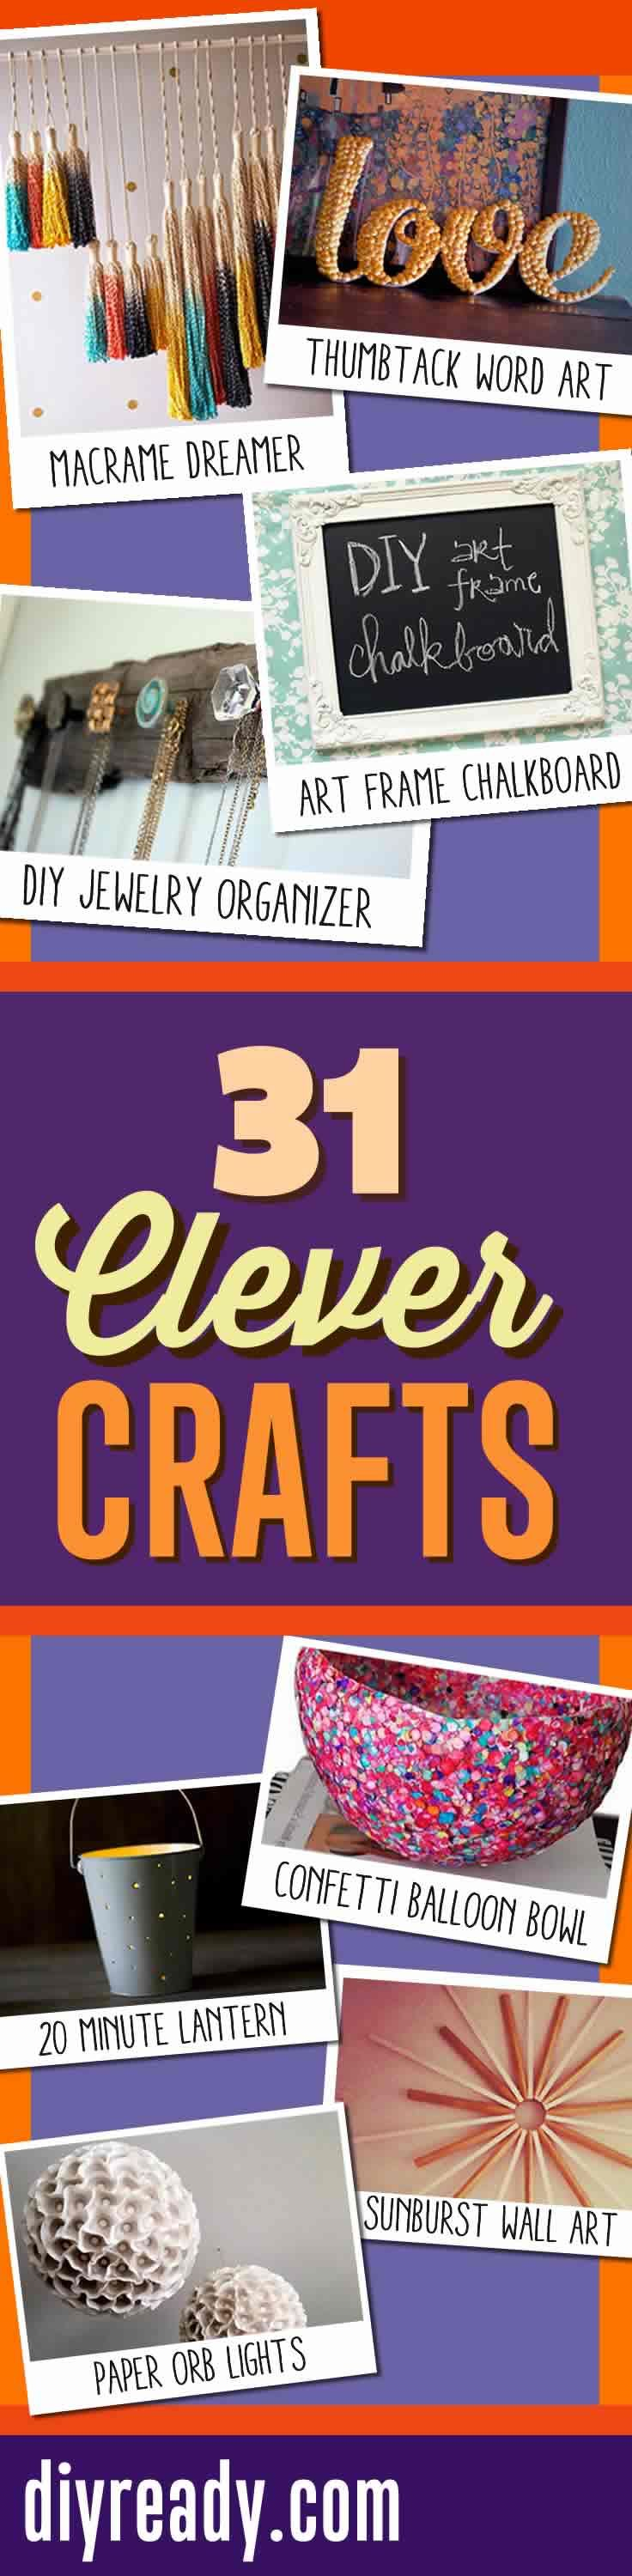 31 Clever DIY Crafts. Save On Crafts with these Easy DIY Ideas for Cool, Crafty Do It Yourself Projects. http://diyready.com/save-on-easy-diy-crafts/